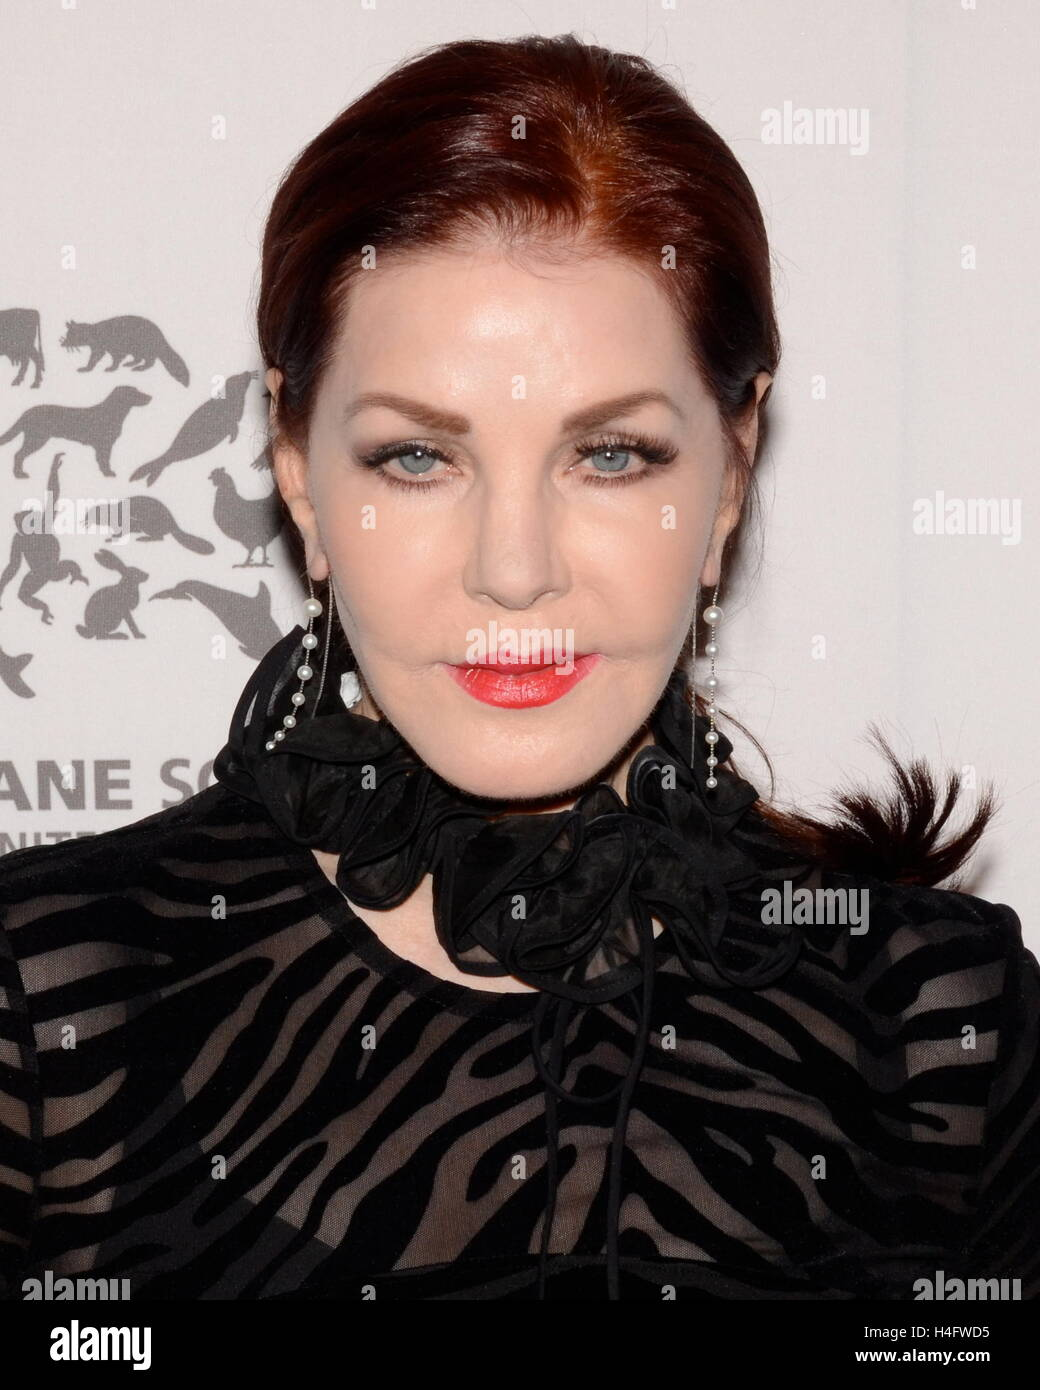 Priscilla Presley arrives at The Humane Society Of The United States' To The Rescue Gala at Paramount Studios - Stock Image